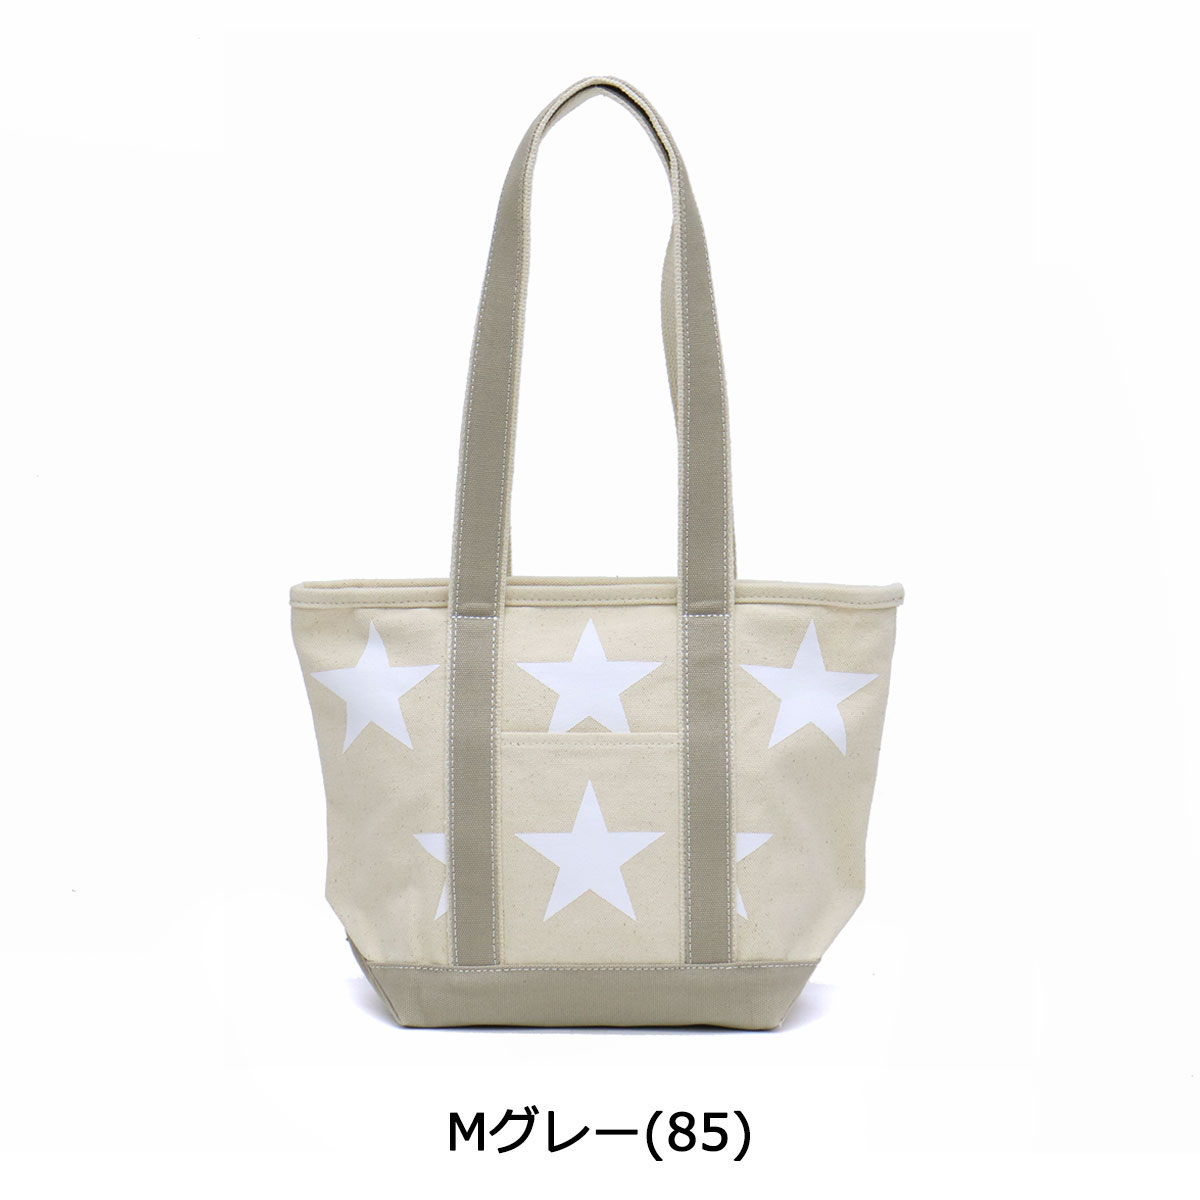 02cfeb17be8 ... Converse Tote Bag CONVERSE S size STAR Print Tote Bag Star Print Tote  Bag Ladies Mini ...